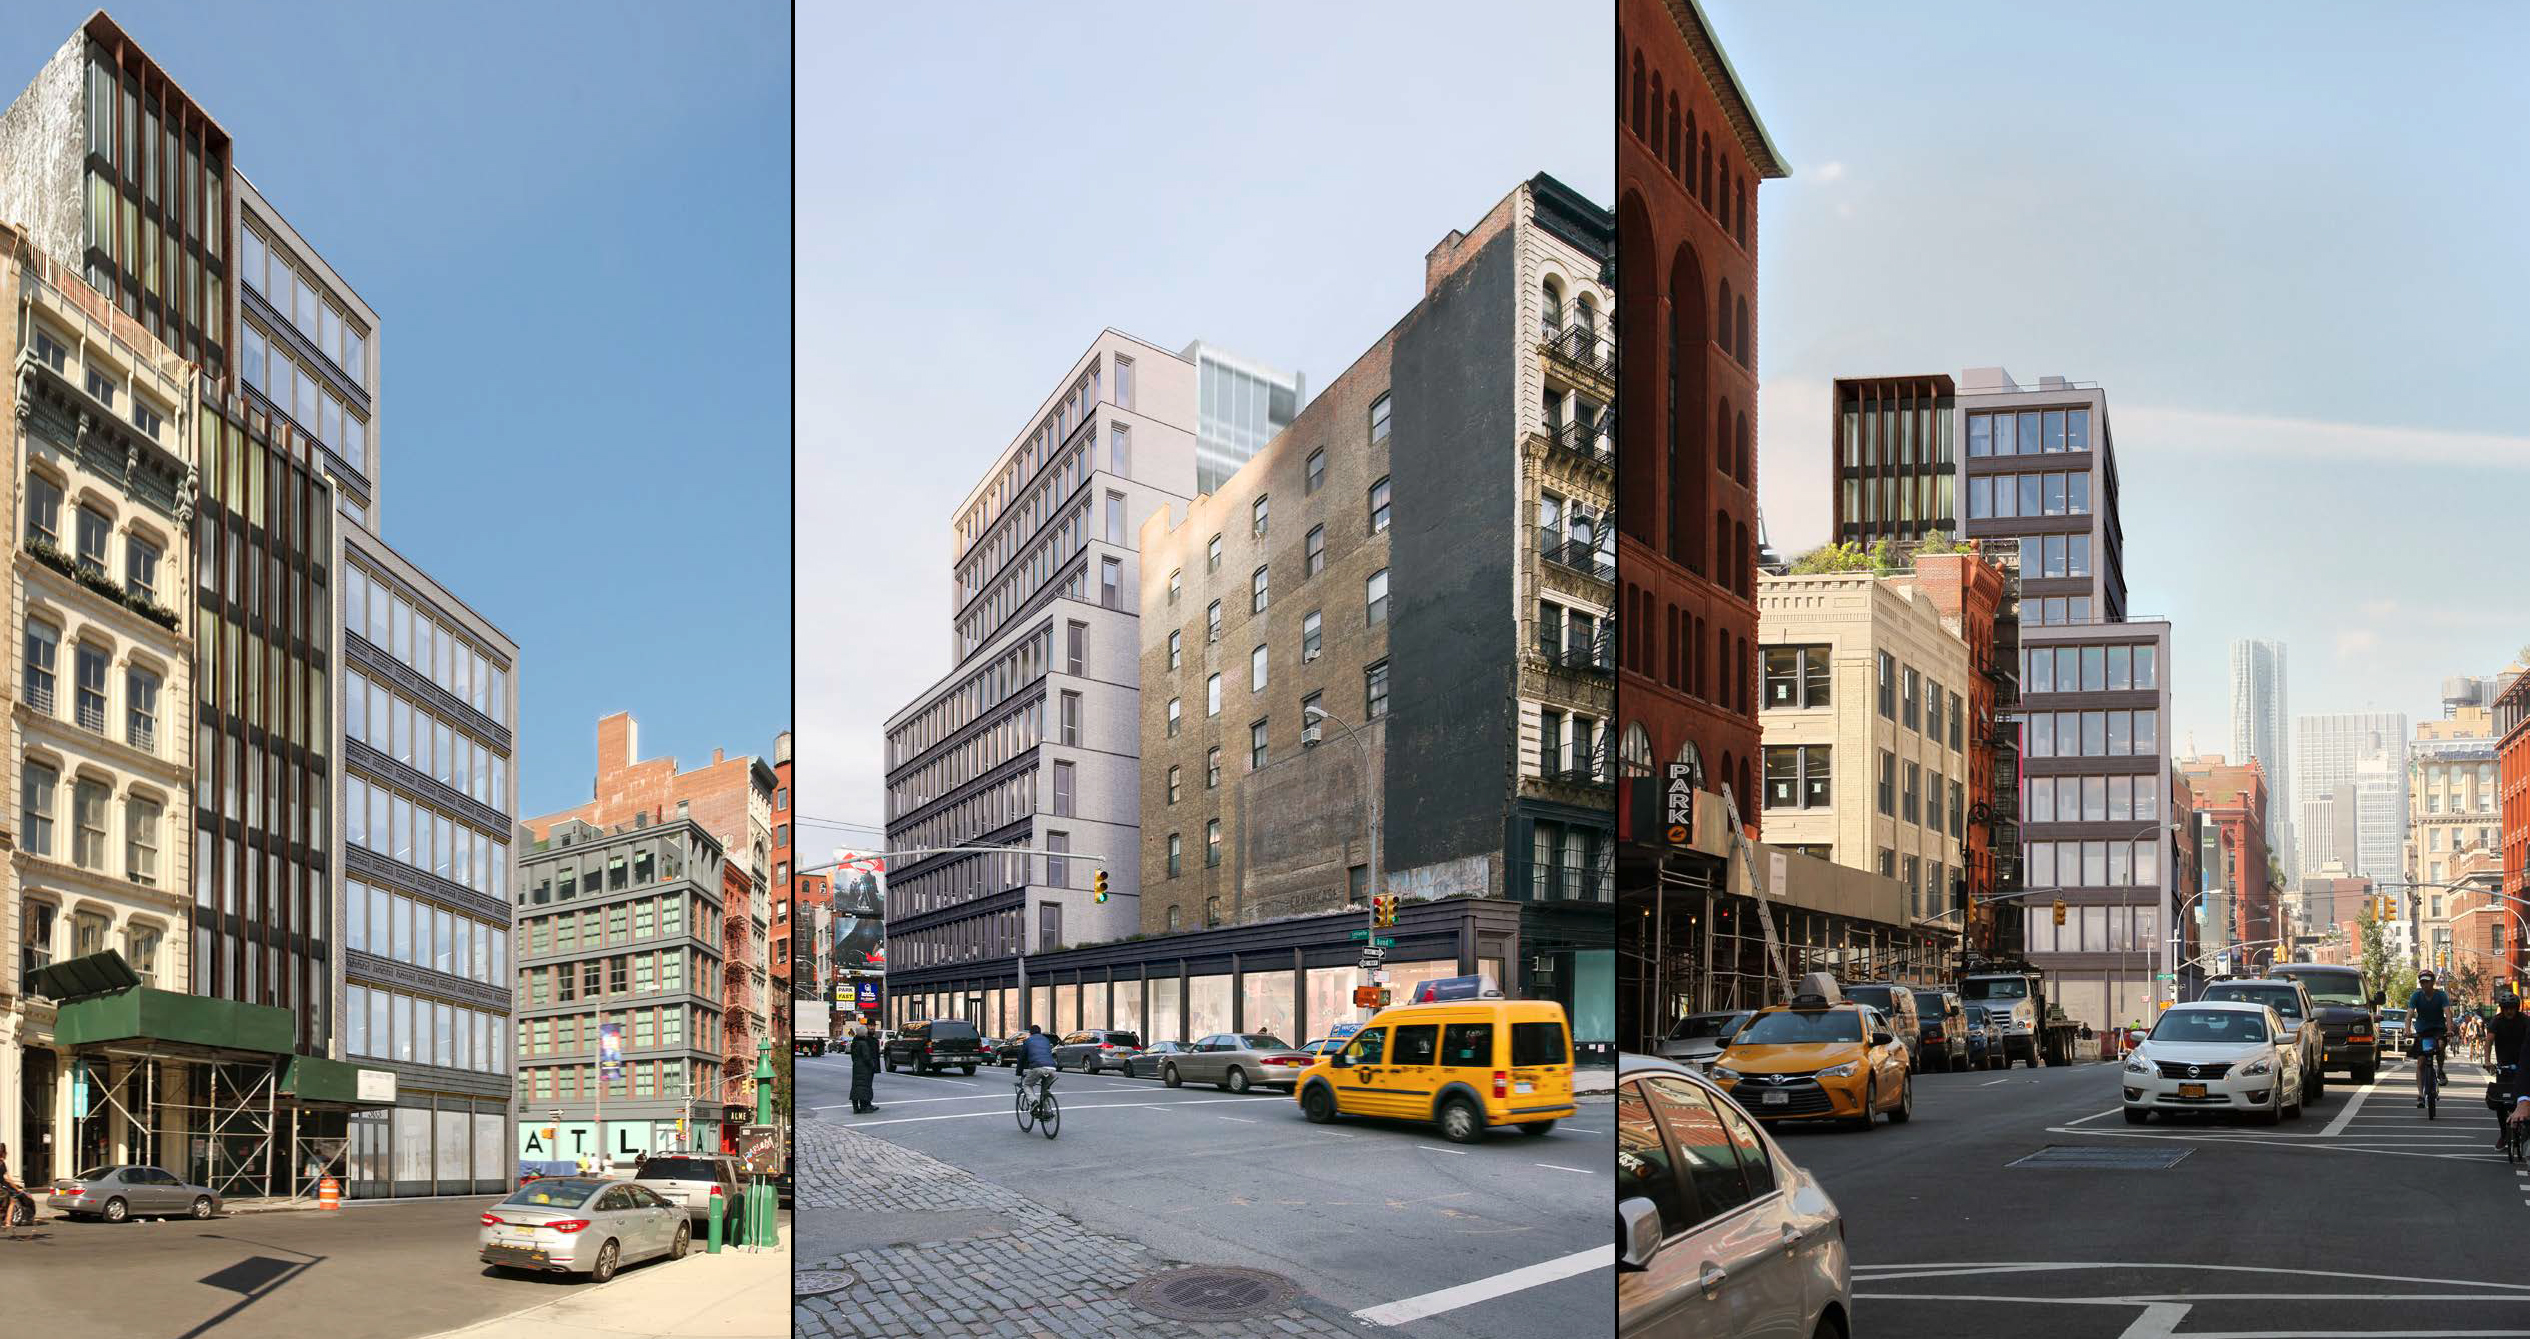 More renderings of the revised proposal for 363 Lafayette Street